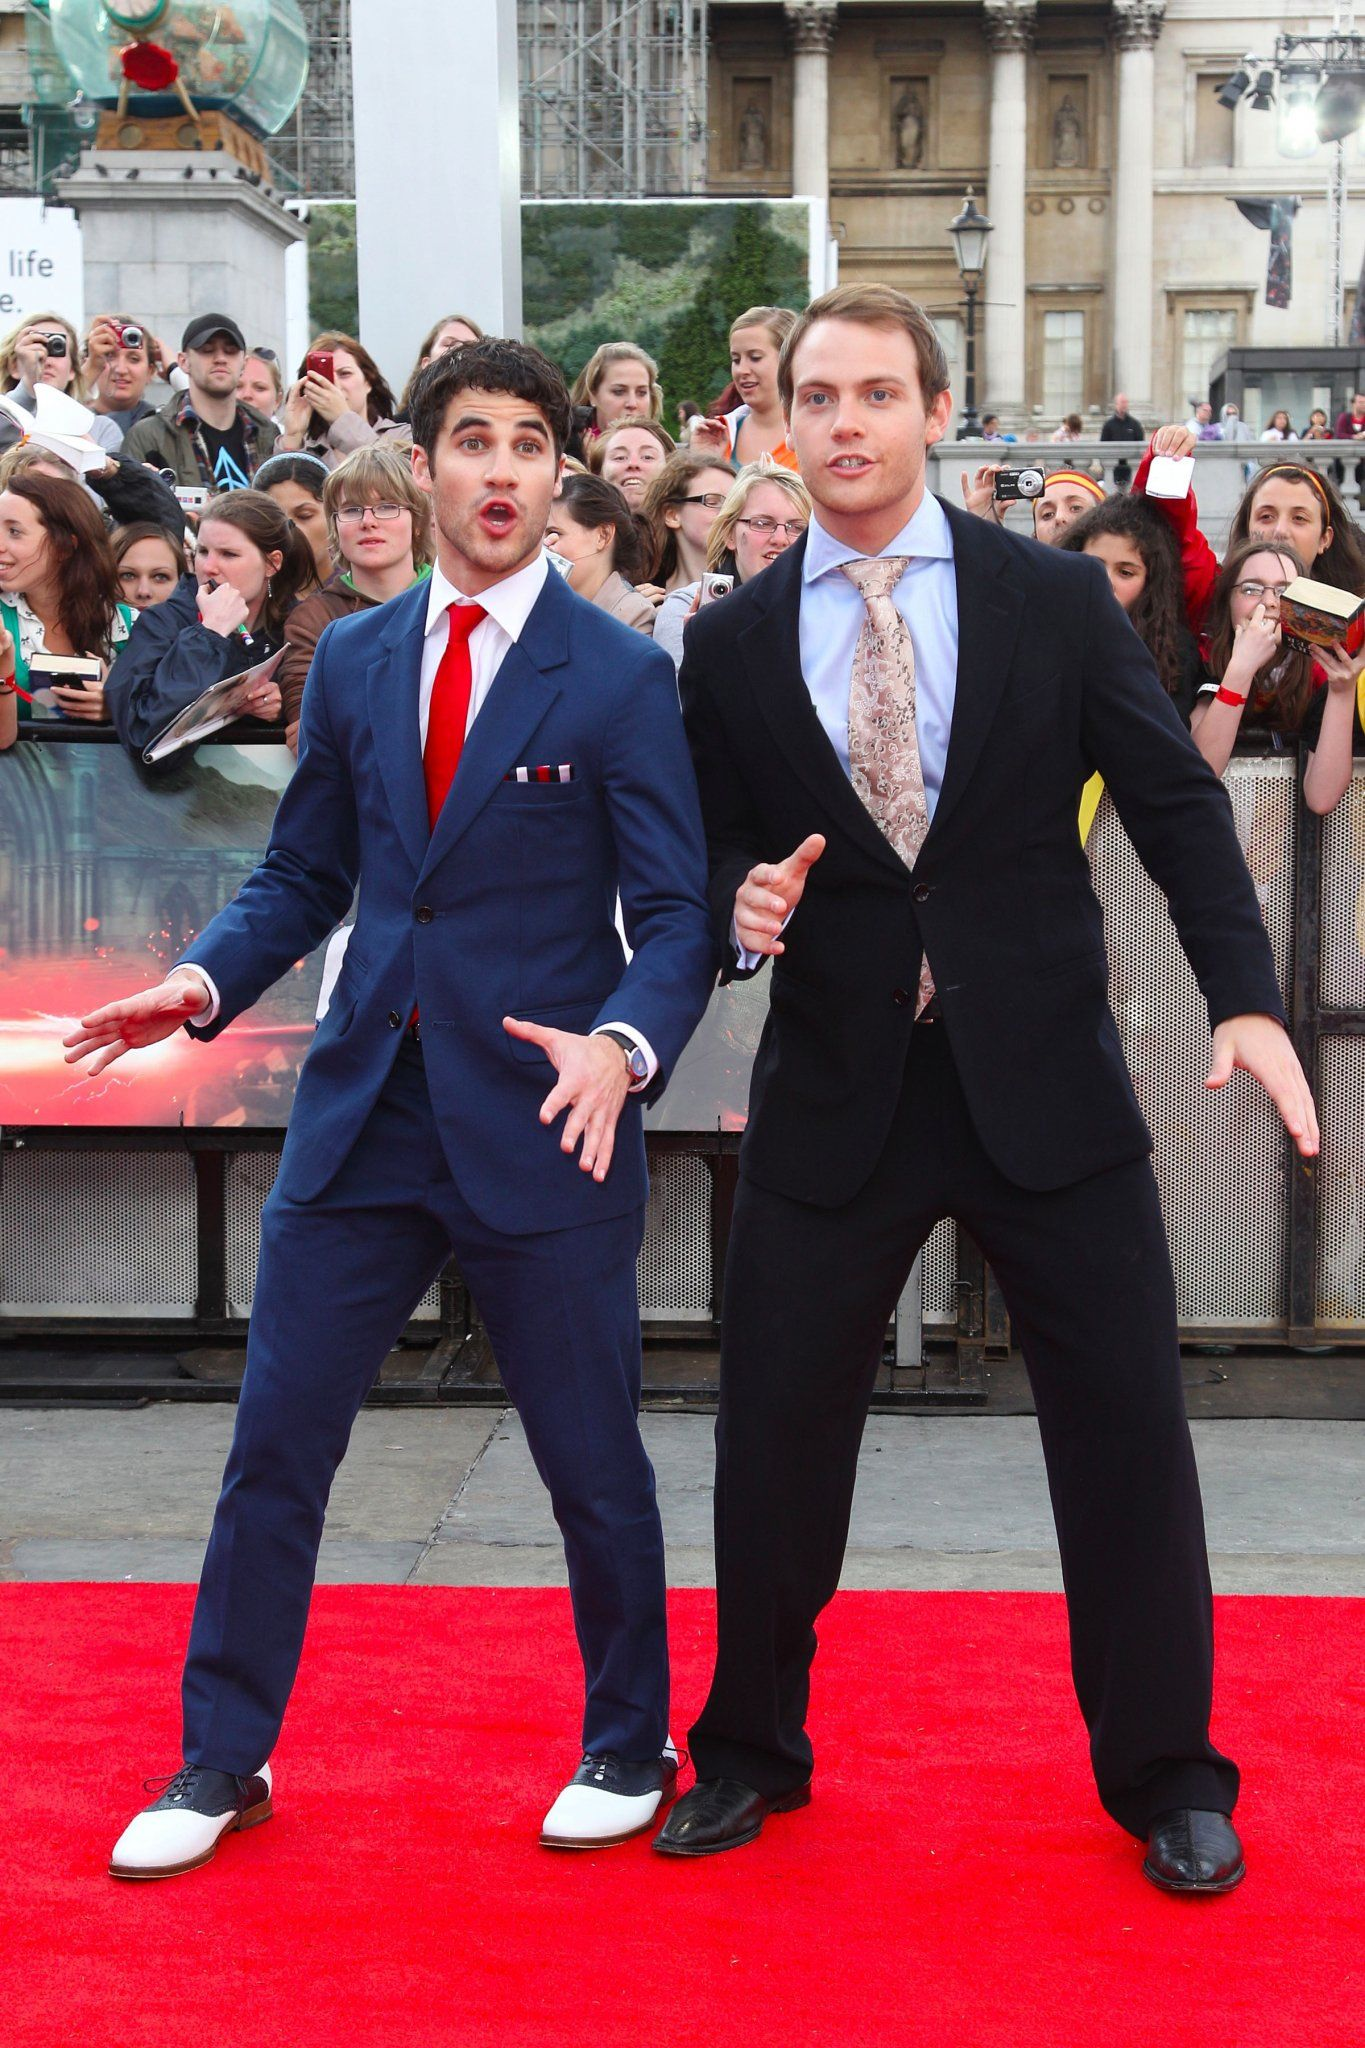 darren criss & joe walker at the London premiere of Harry Potter and the Deathly Hallows, part 2